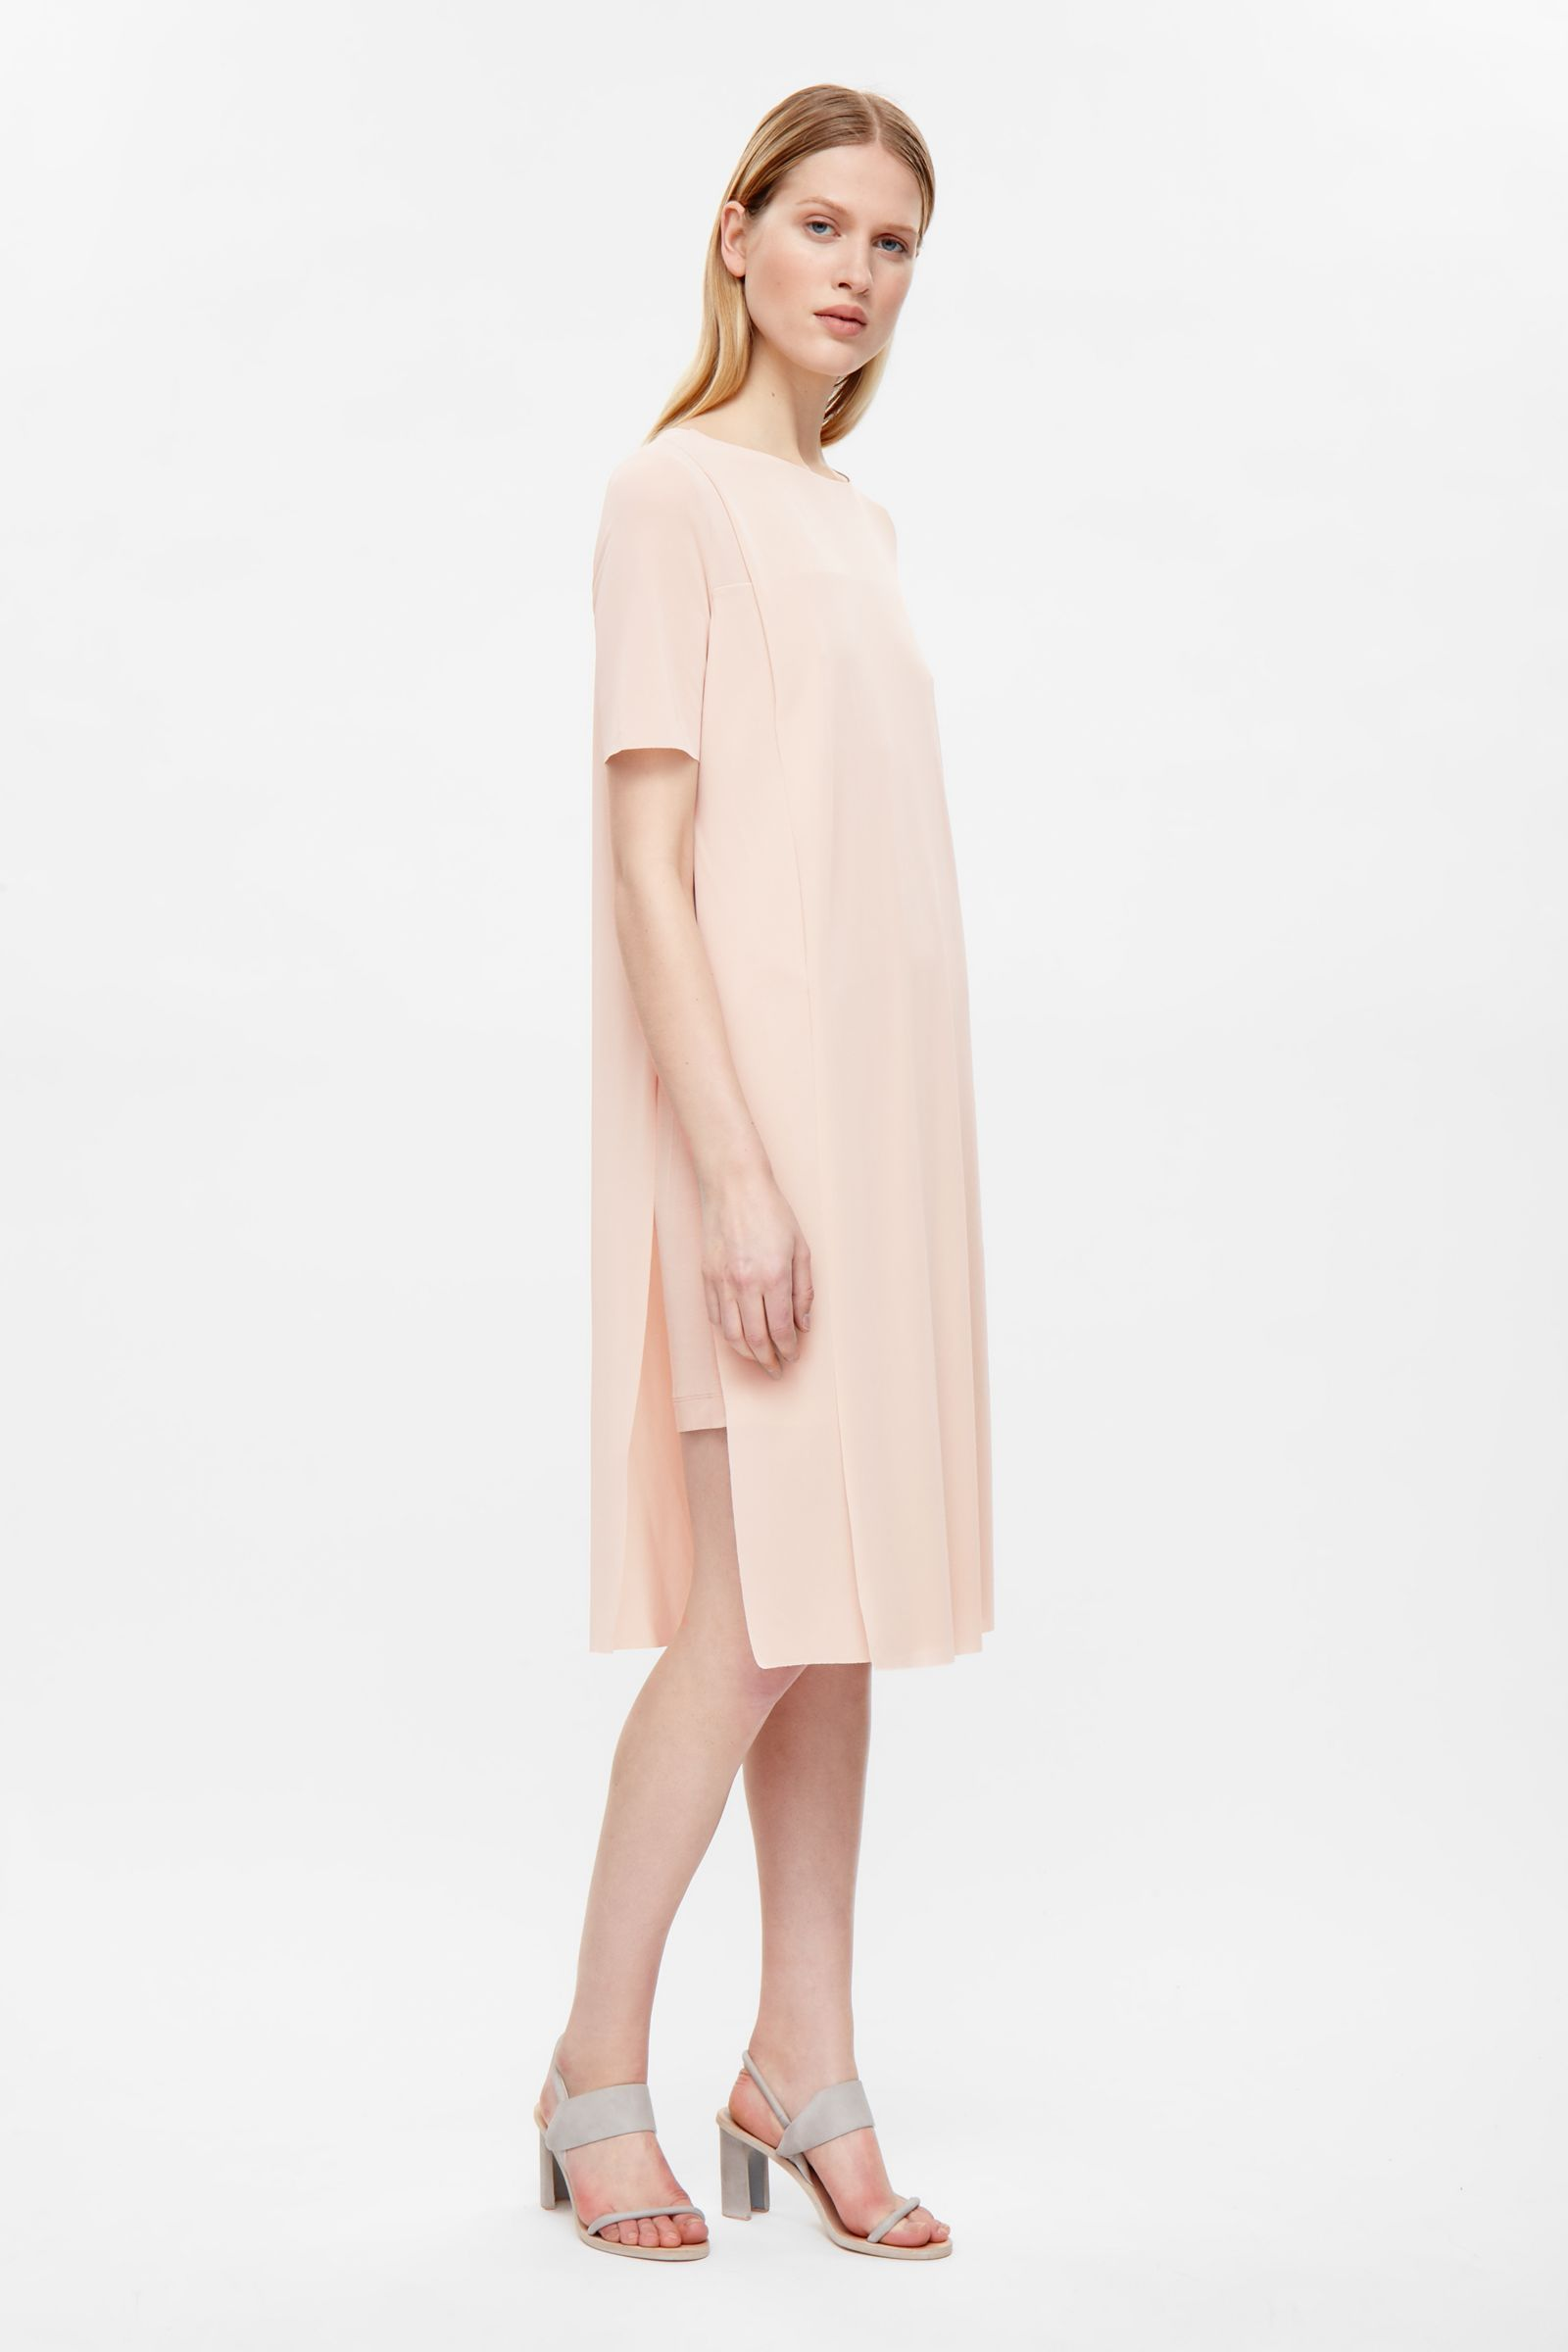 Made from layers of sheer material this long dress has modern raw